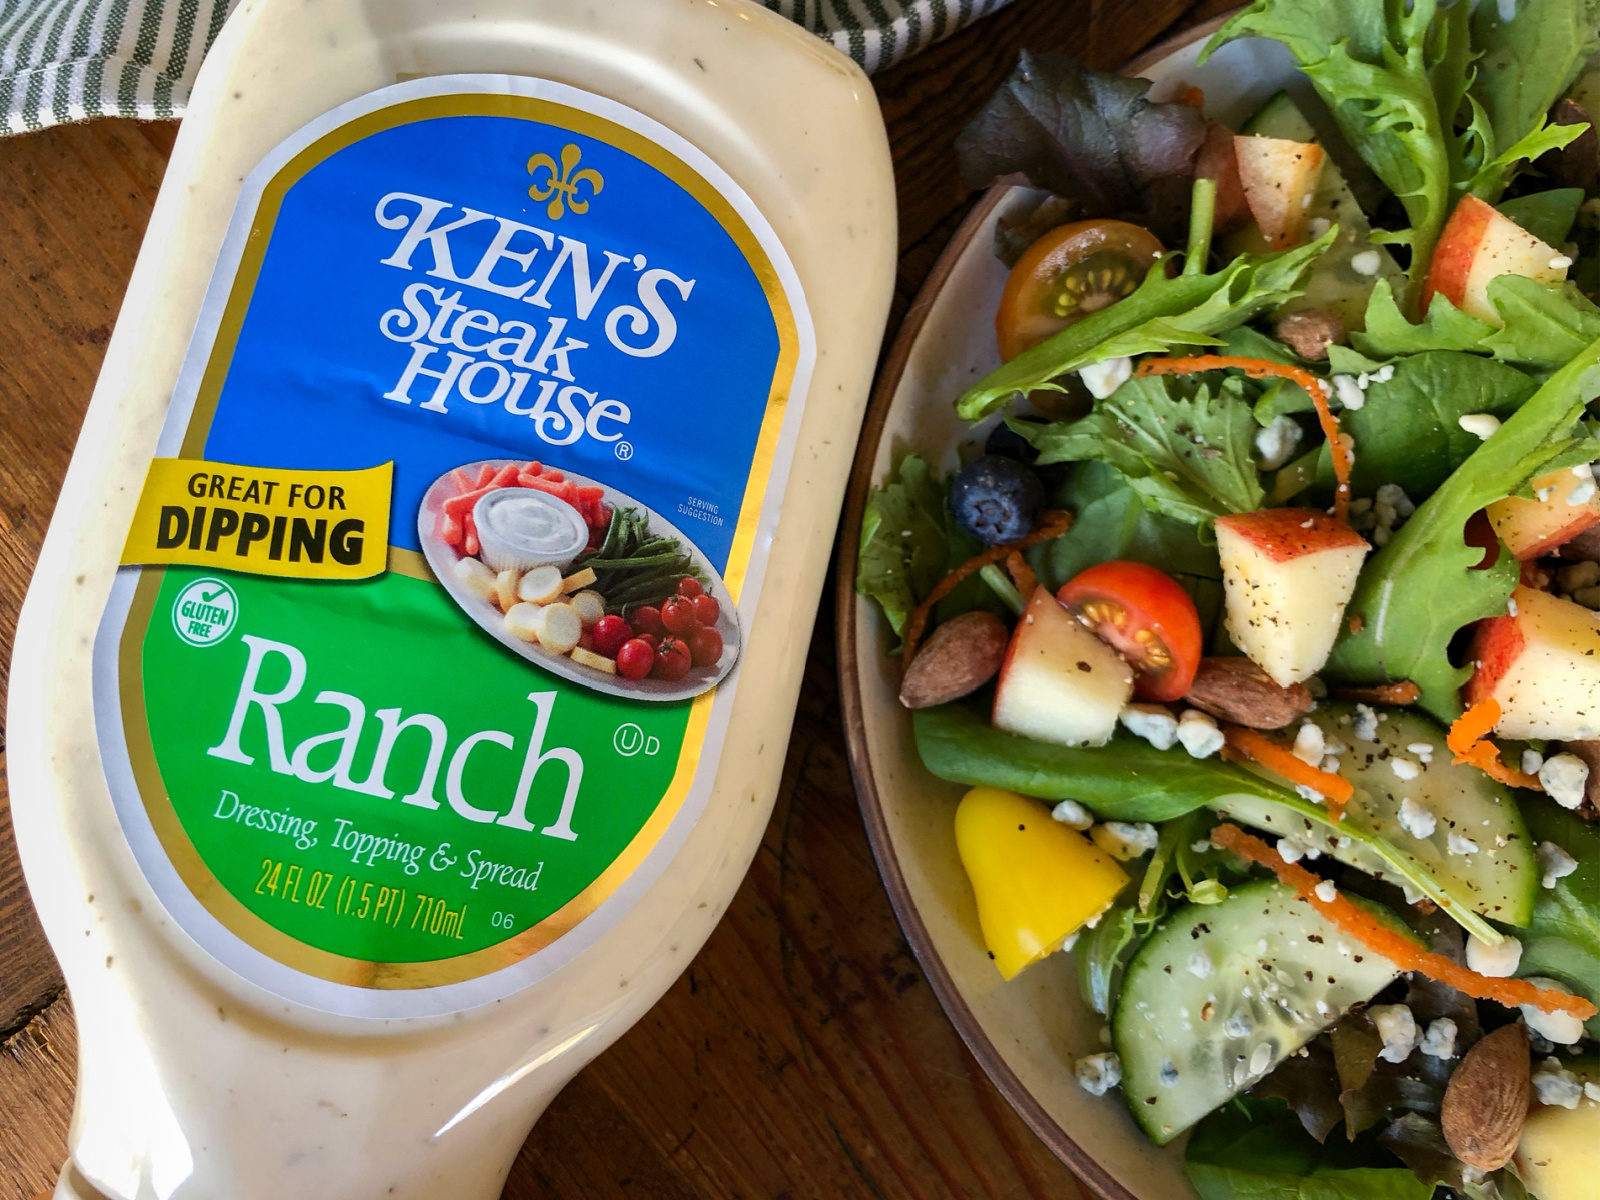 Big Bottles Of Ken's Steak House Dressing Just $1.50 At Publix on I Heart Publix